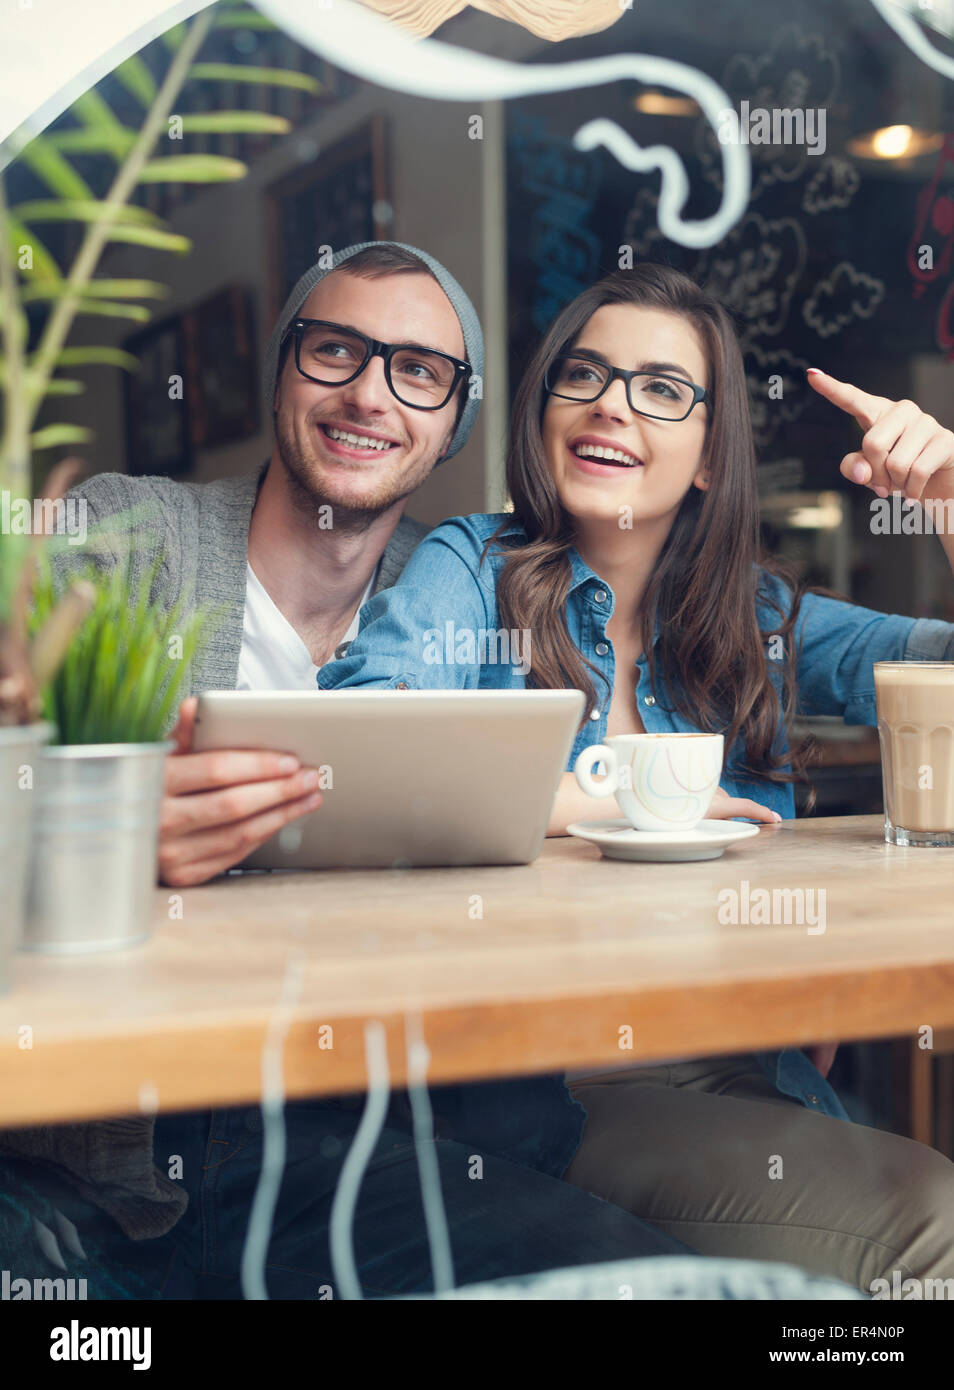 Happy couple using digital tablet at cafe. Krakow, Poland - Stock Image